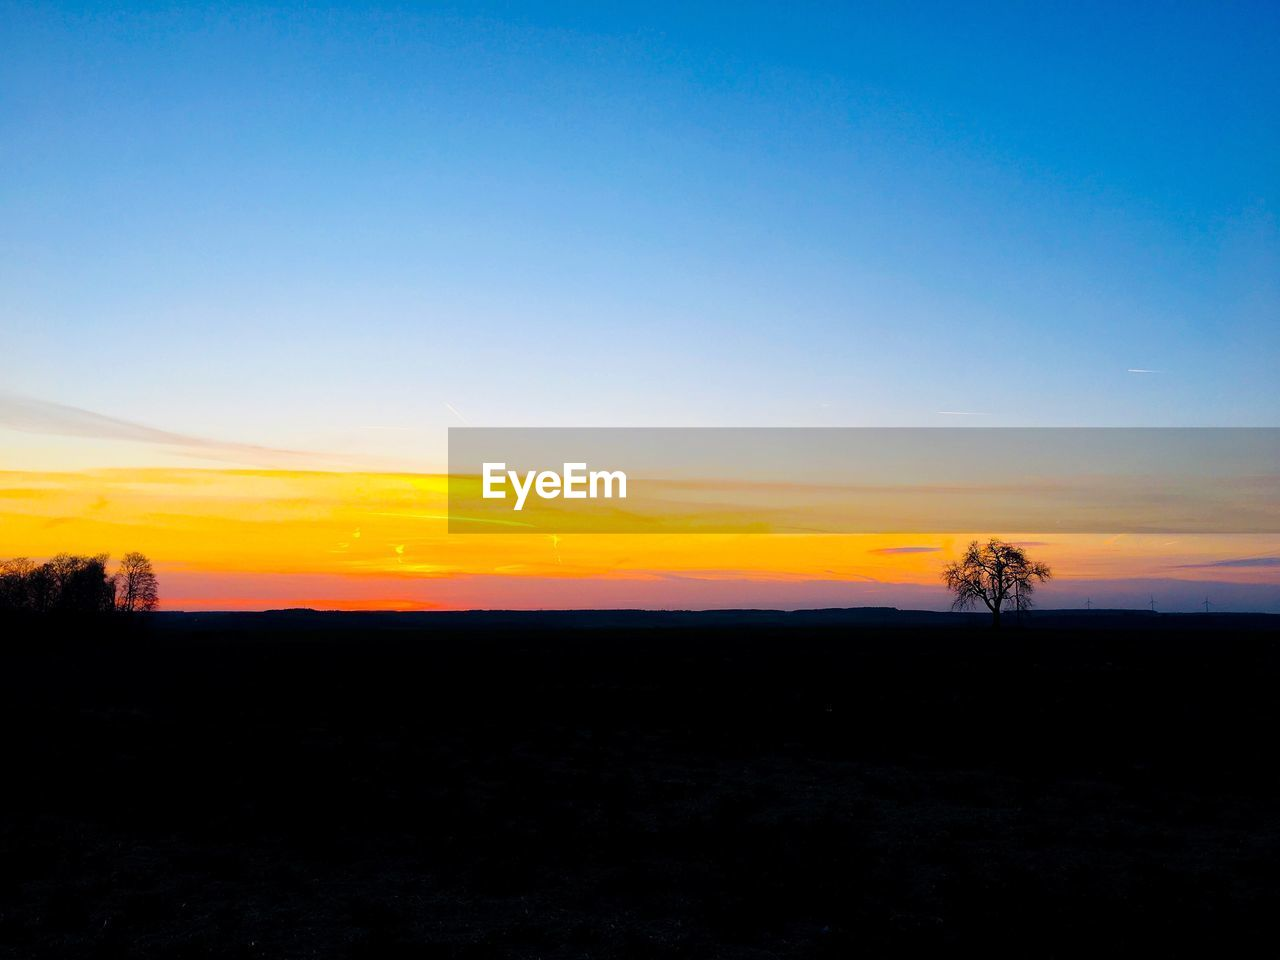 sky, sunset, scenics - nature, beauty in nature, tranquil scene, silhouette, tranquility, copy space, environment, landscape, idyllic, nature, non-urban scene, tree, orange color, no people, plant, land, field, blue, outdoors